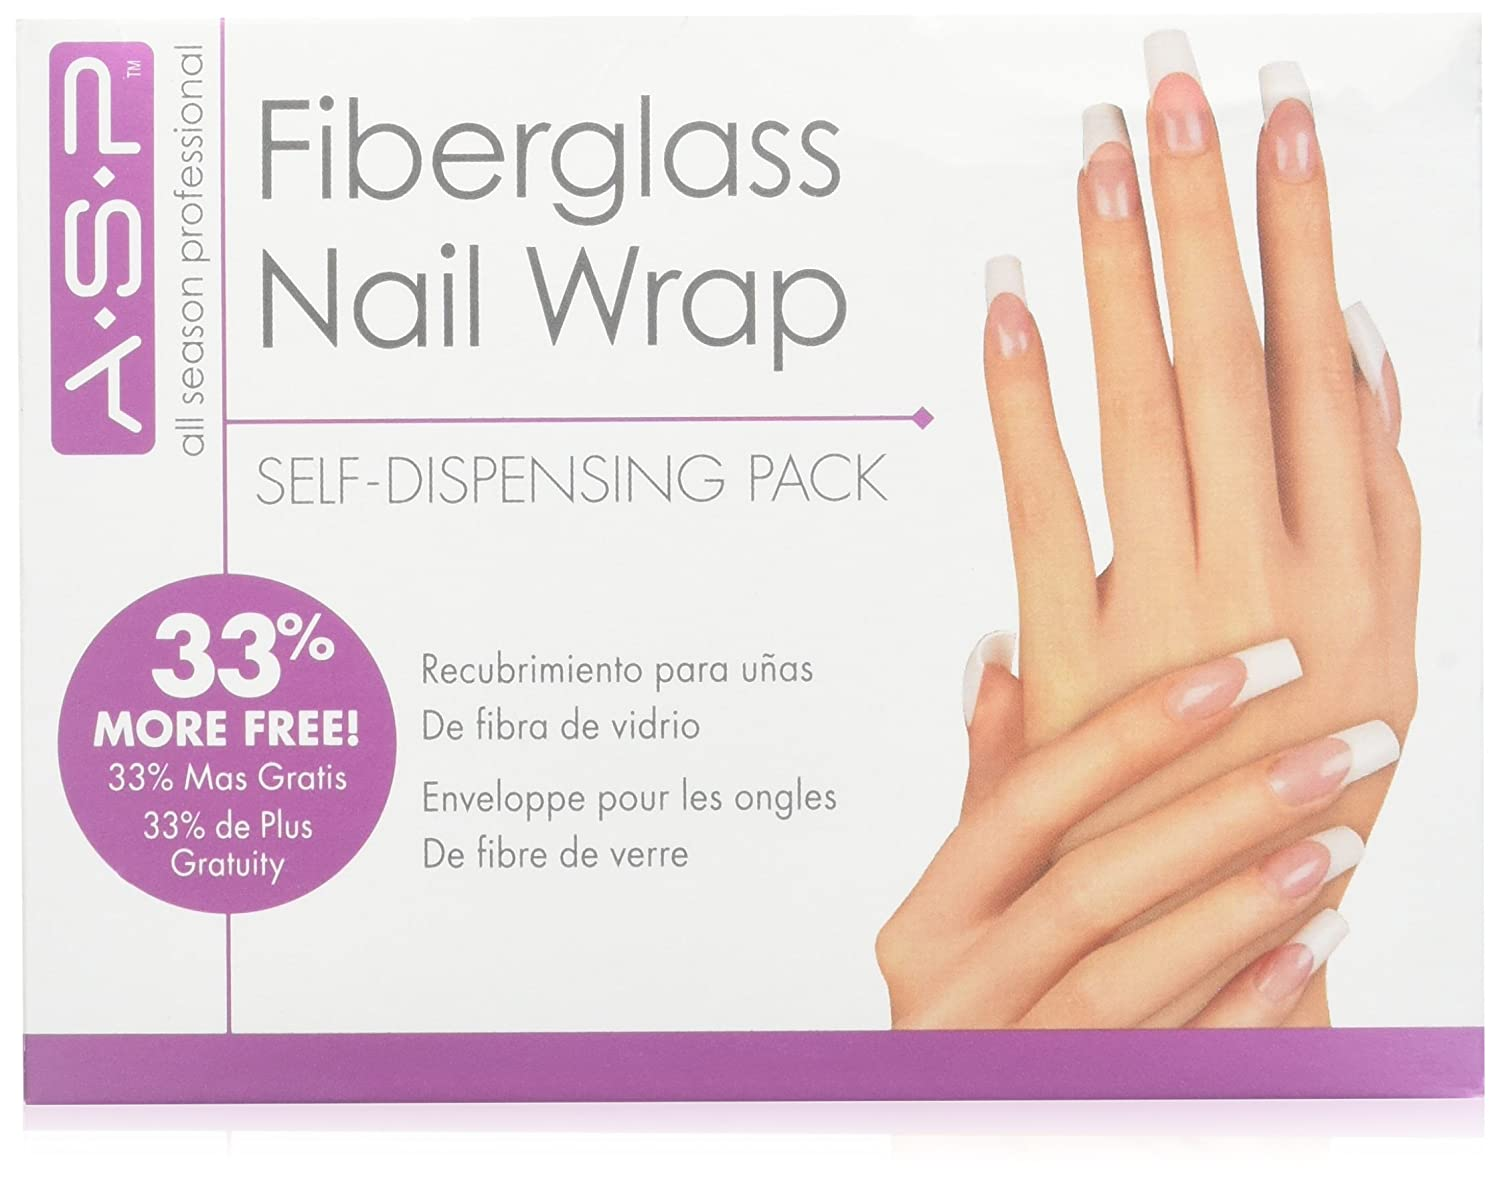 All Season Nail Fiberglass Nail Wrap STAR NAIL